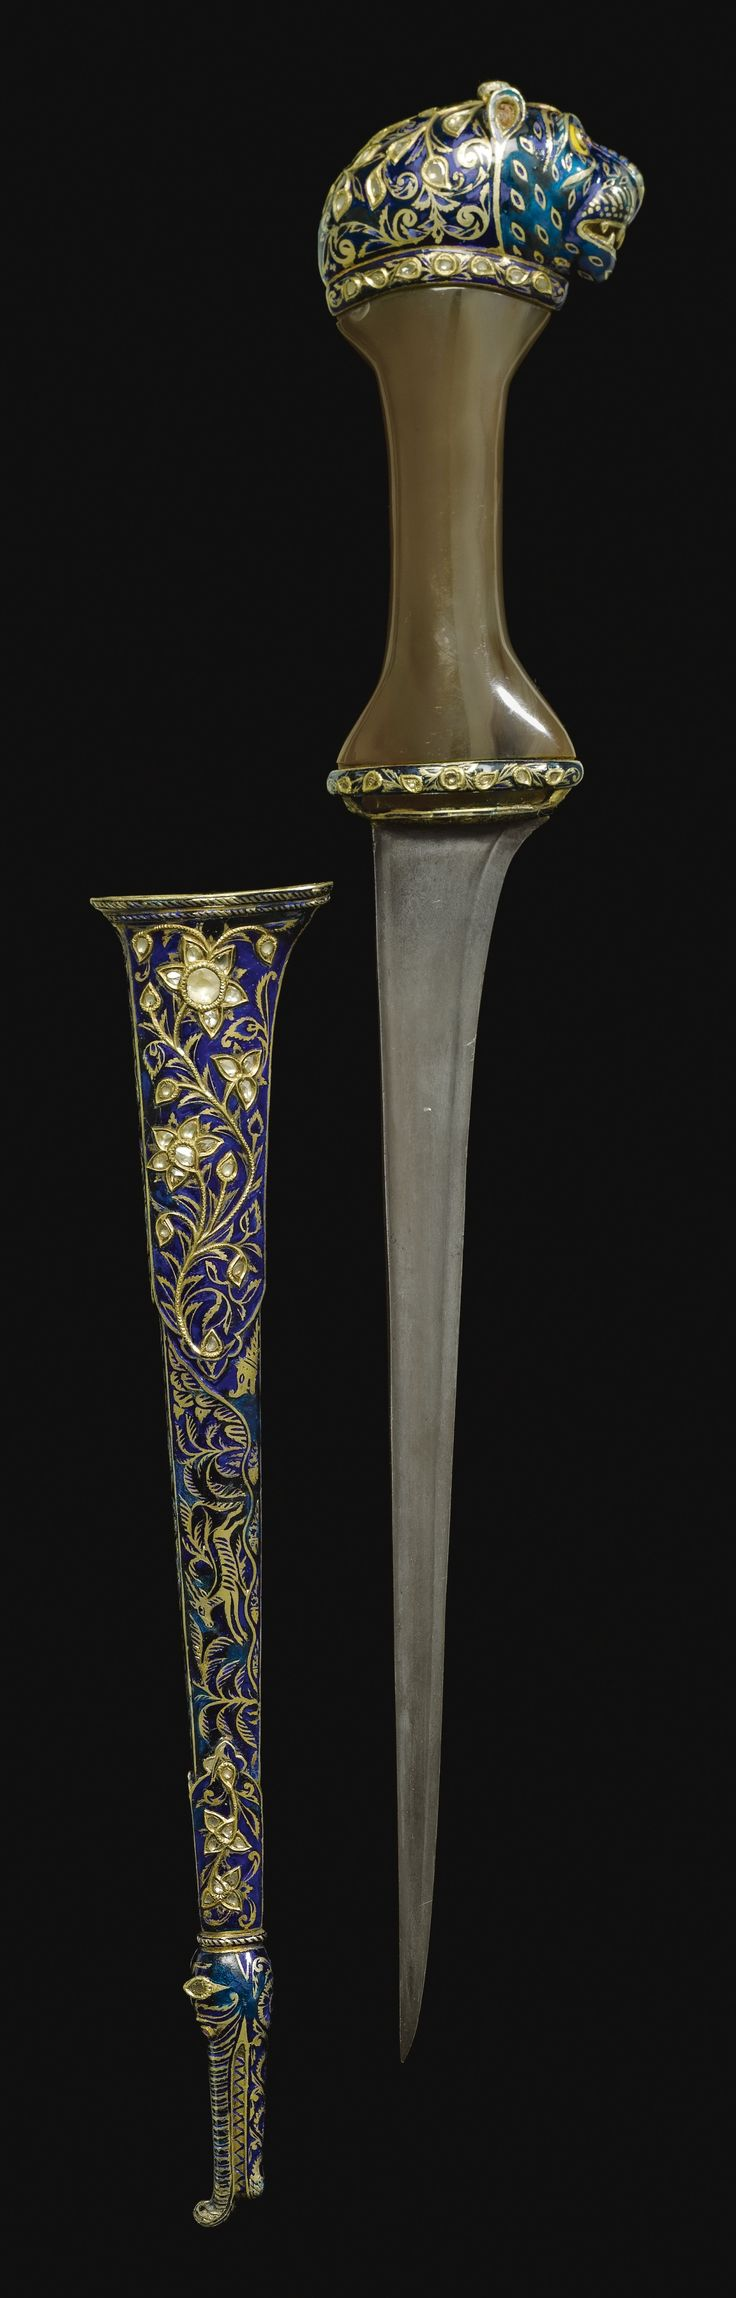 A richly enameled dagger c1790, Seringapatam, India. Possibly from the personal armoury of Tipu Sultan. Scabered enameled in blue with gold and white Bubri decoration. Hilt is a carved piece of agate. Pommel is enameled metal shaped like a tiger head.